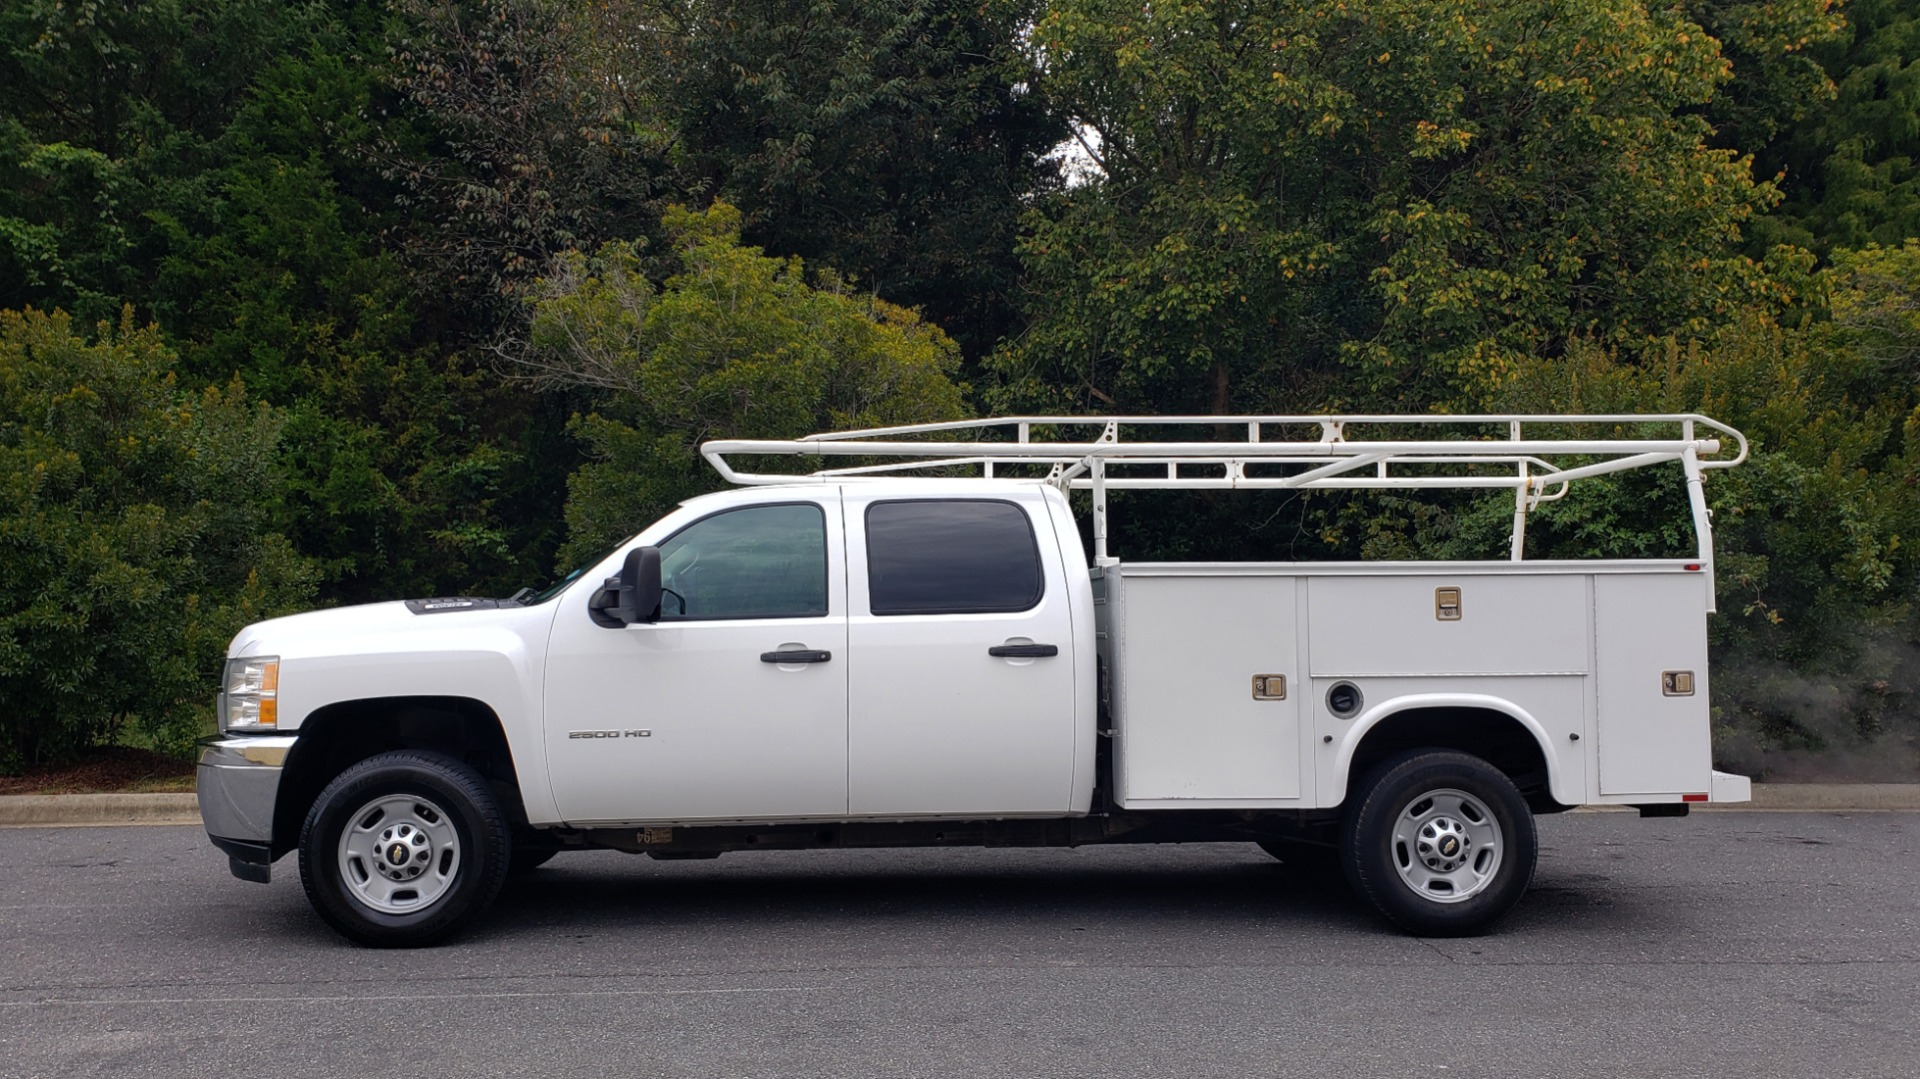 Used 2013 Chevrolet SILVERADO 2500HD WORK TRUCK 4WD / 6.0L V8 / AUTO / TOOL BOX / CLEAN for sale Sold at Formula Imports in Charlotte NC 28227 2